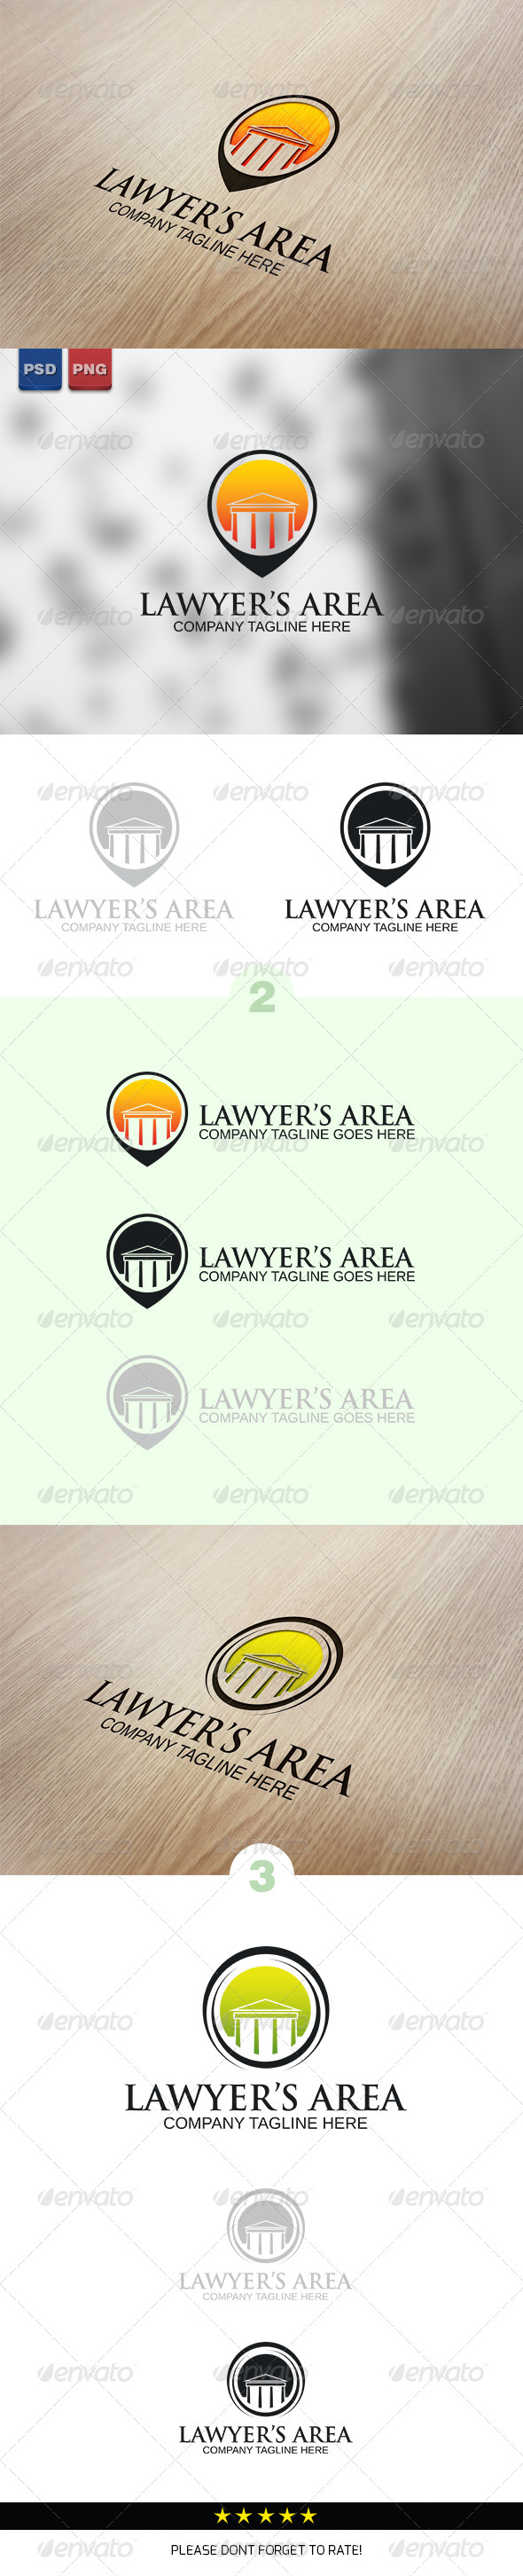 Lawyer's Area Logo Template - Buildings Logo Templates